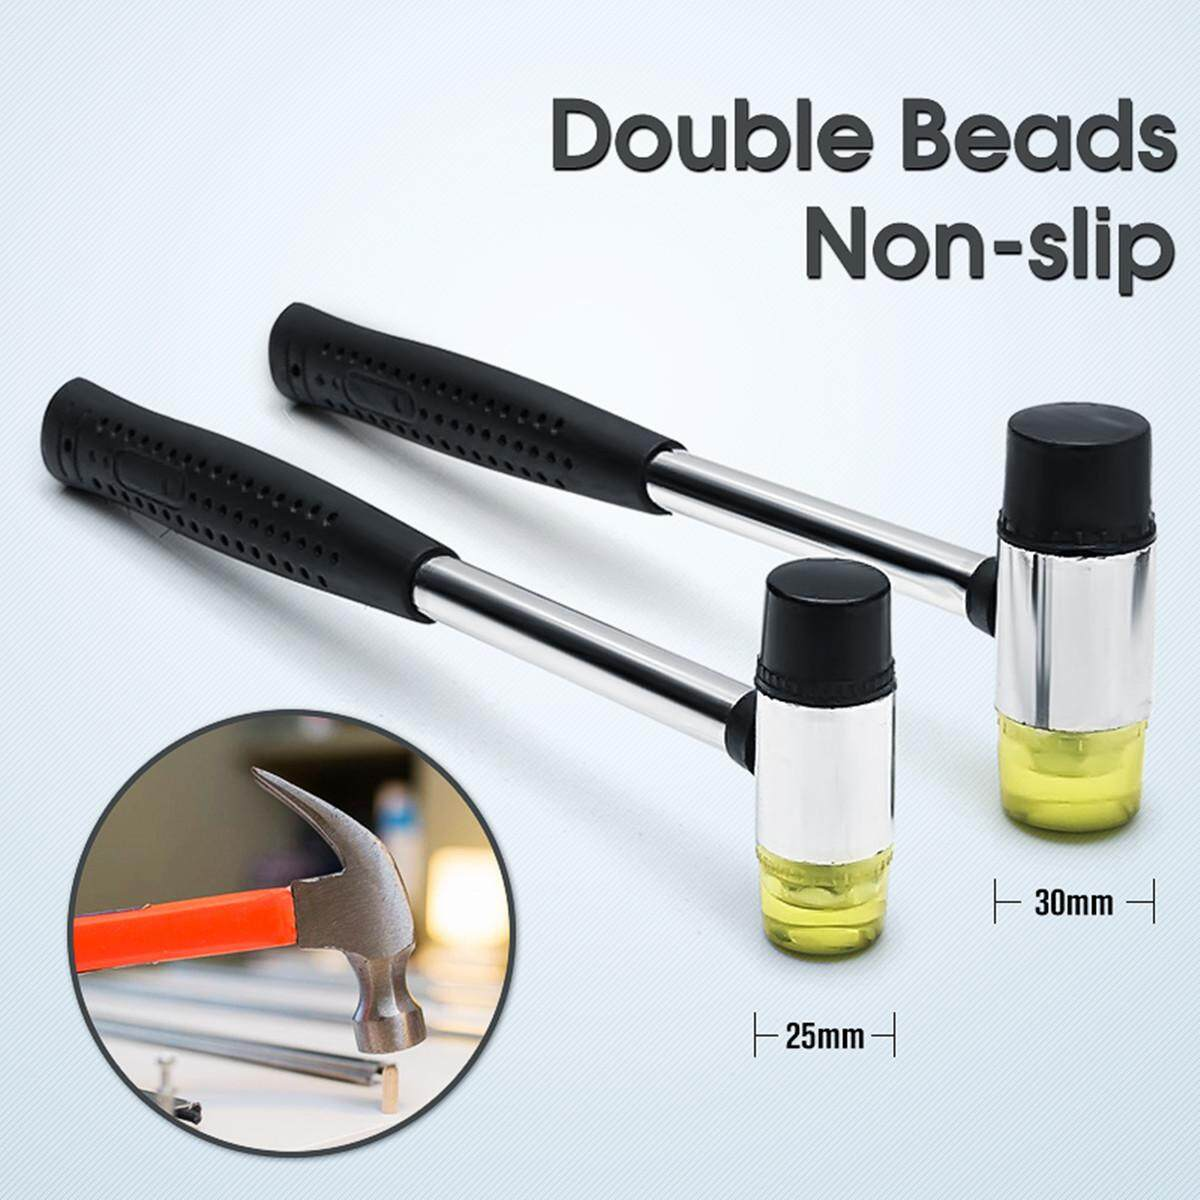 NEW Double Head Nonslip Rubber Hammer Handheld Leather Jewelry Mallet Craft 25/30mm